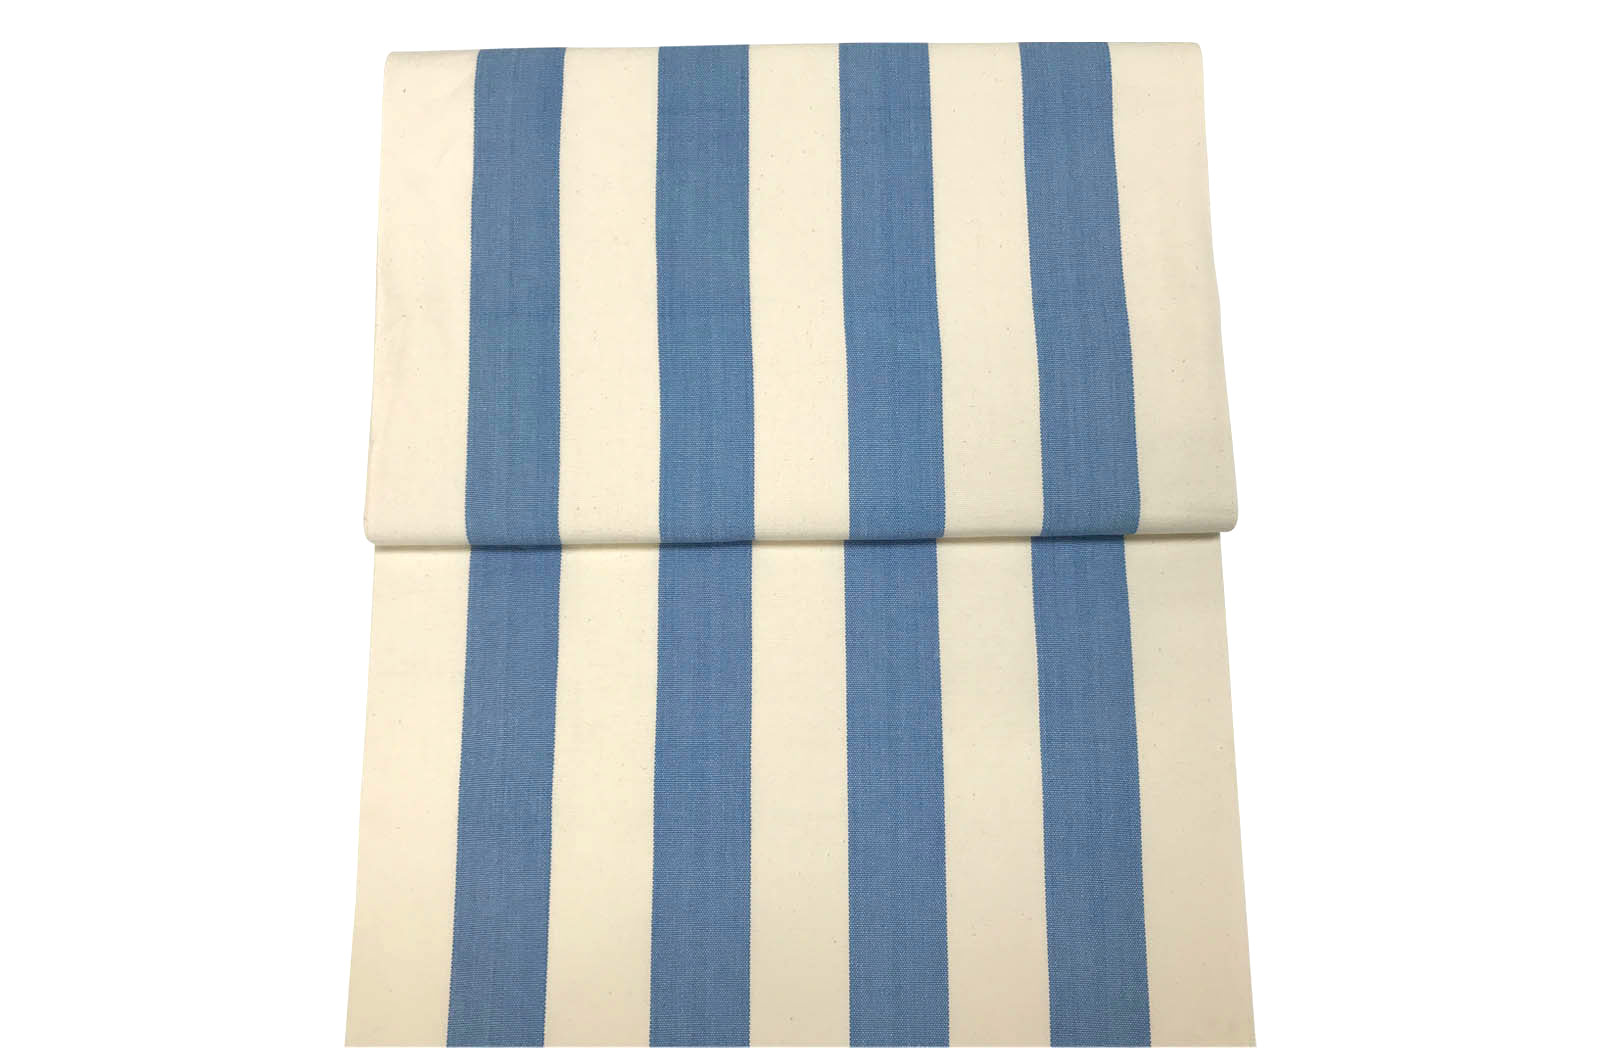 Sky Blue and White Deckchair Canvas Fabric